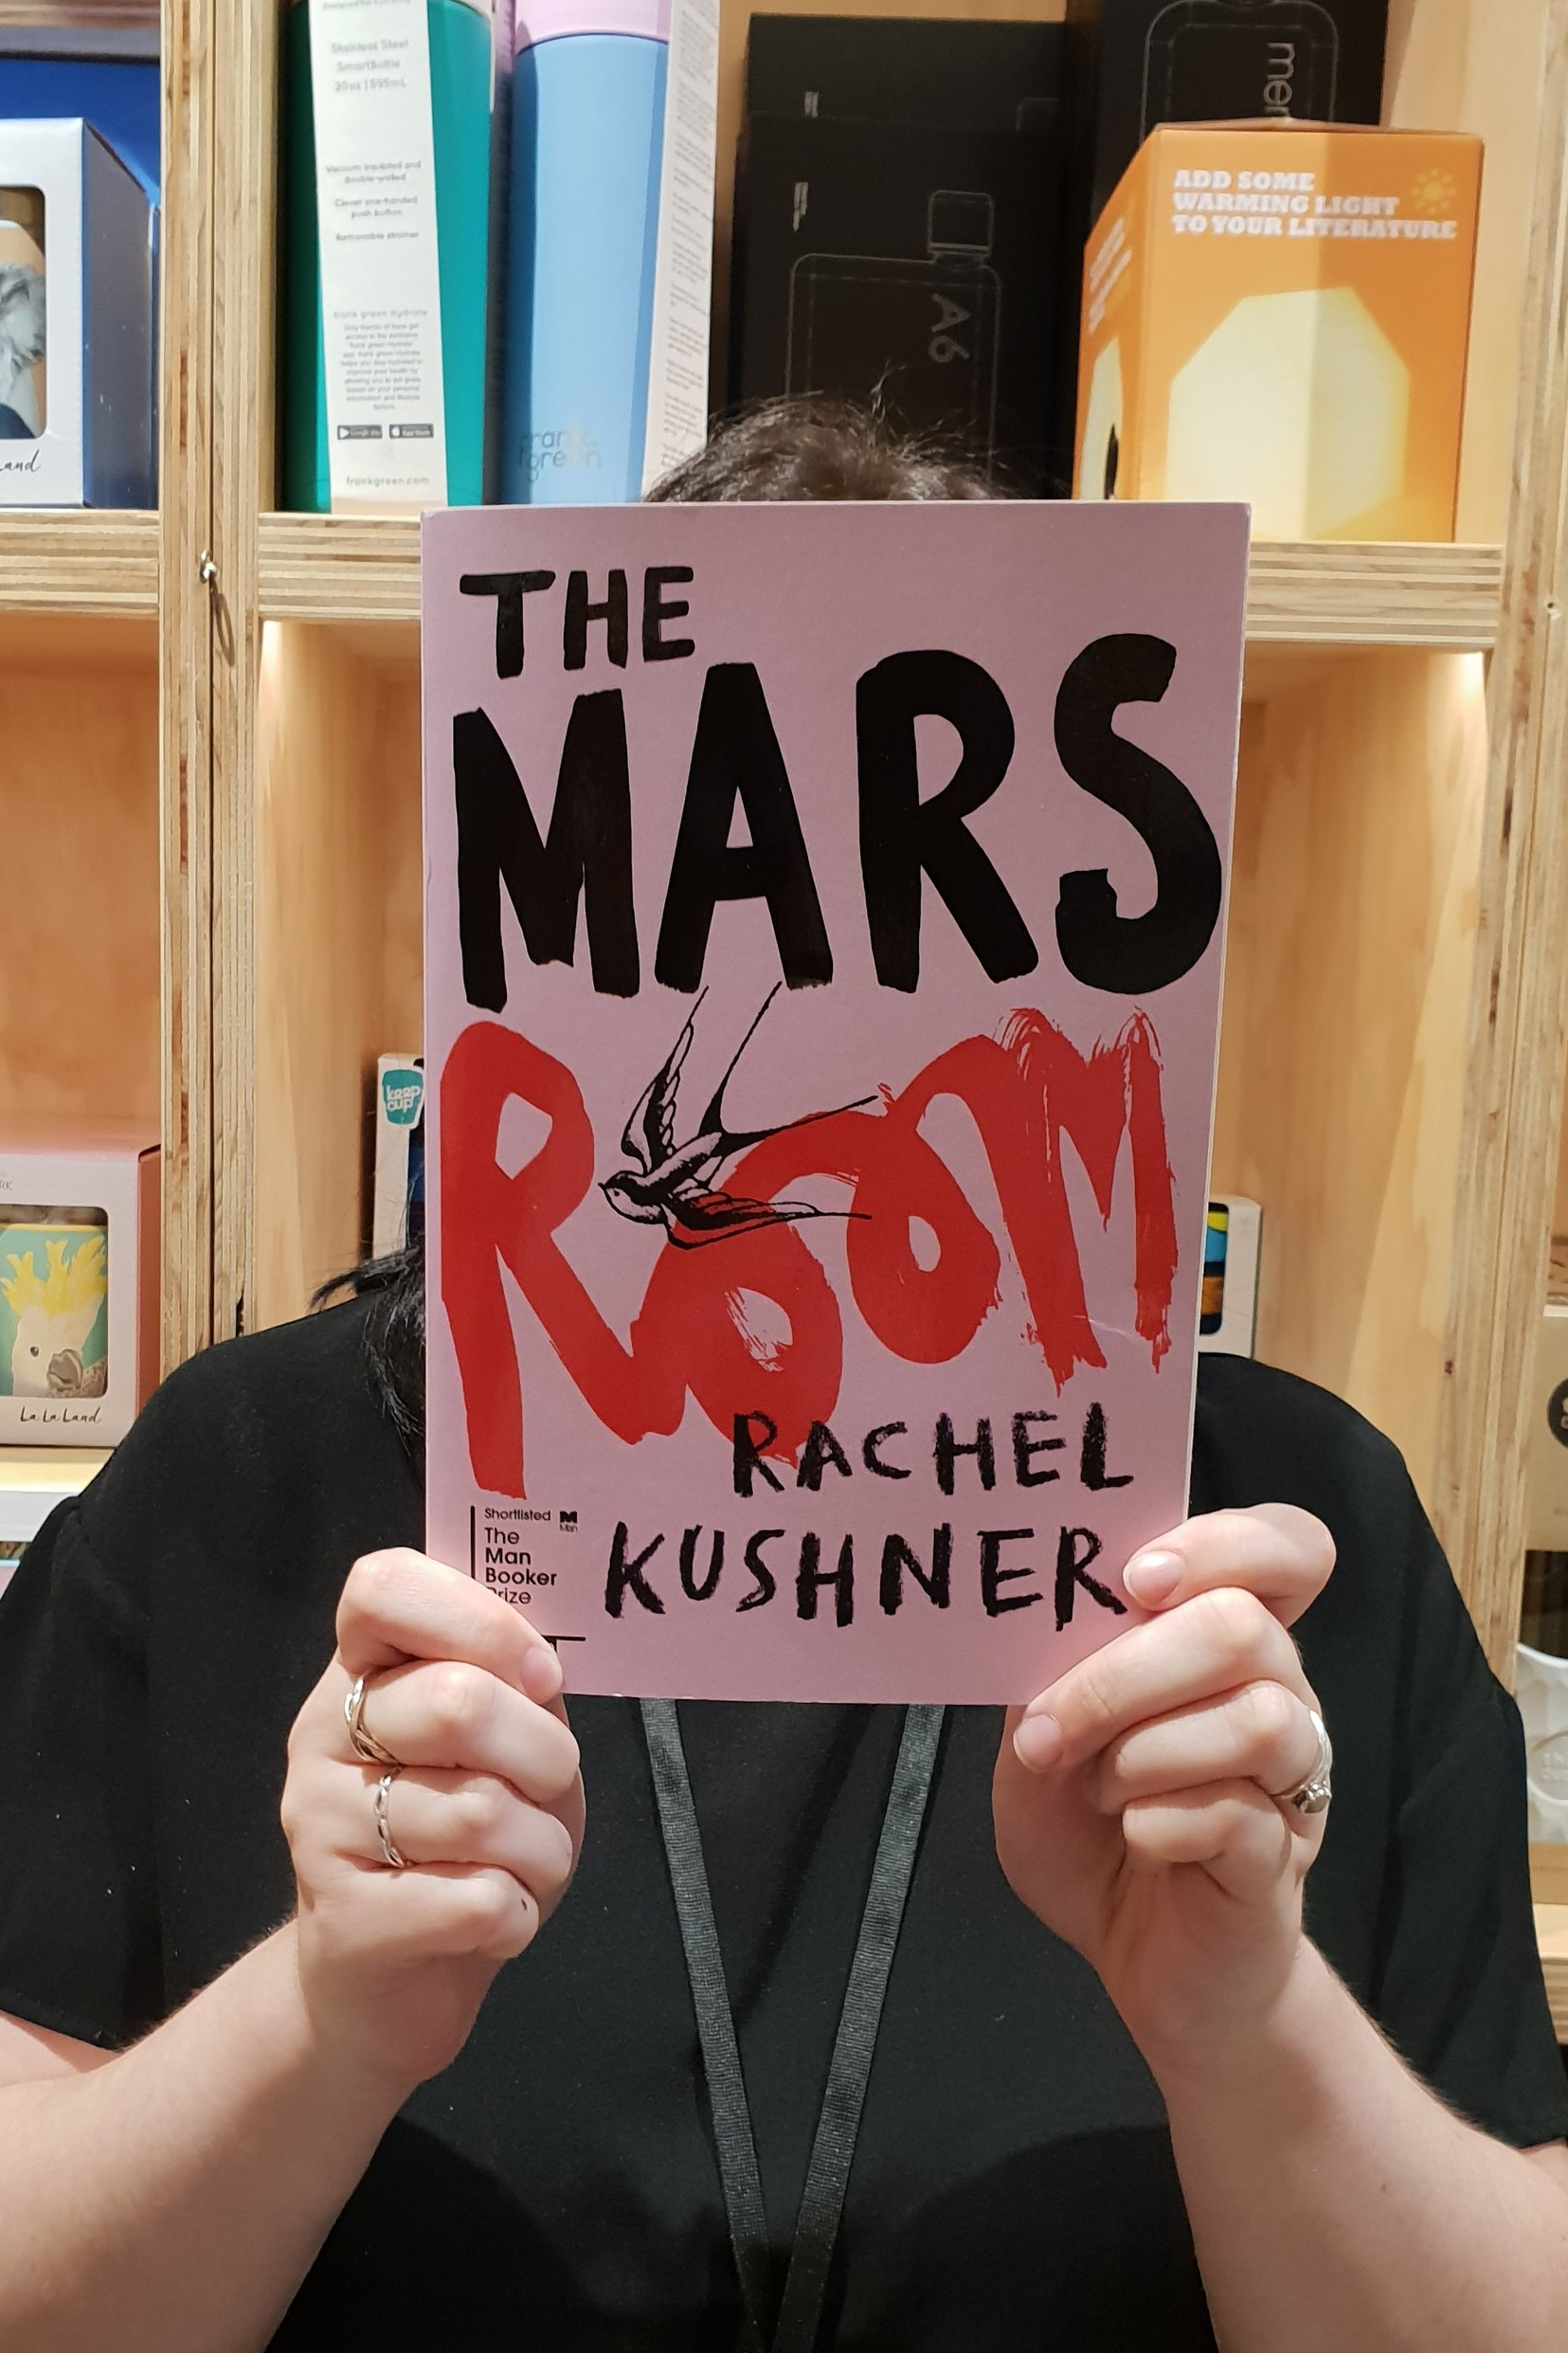 The Mars Room   Rachel Kushner  An educational book with grit, edge and energy. This story is about a young mother's fight against her unjust incarceration. It exposes the flaws in society and in a justice system that is set to work against us. Equal parts challenging and moving.  Reviewed by: Paige